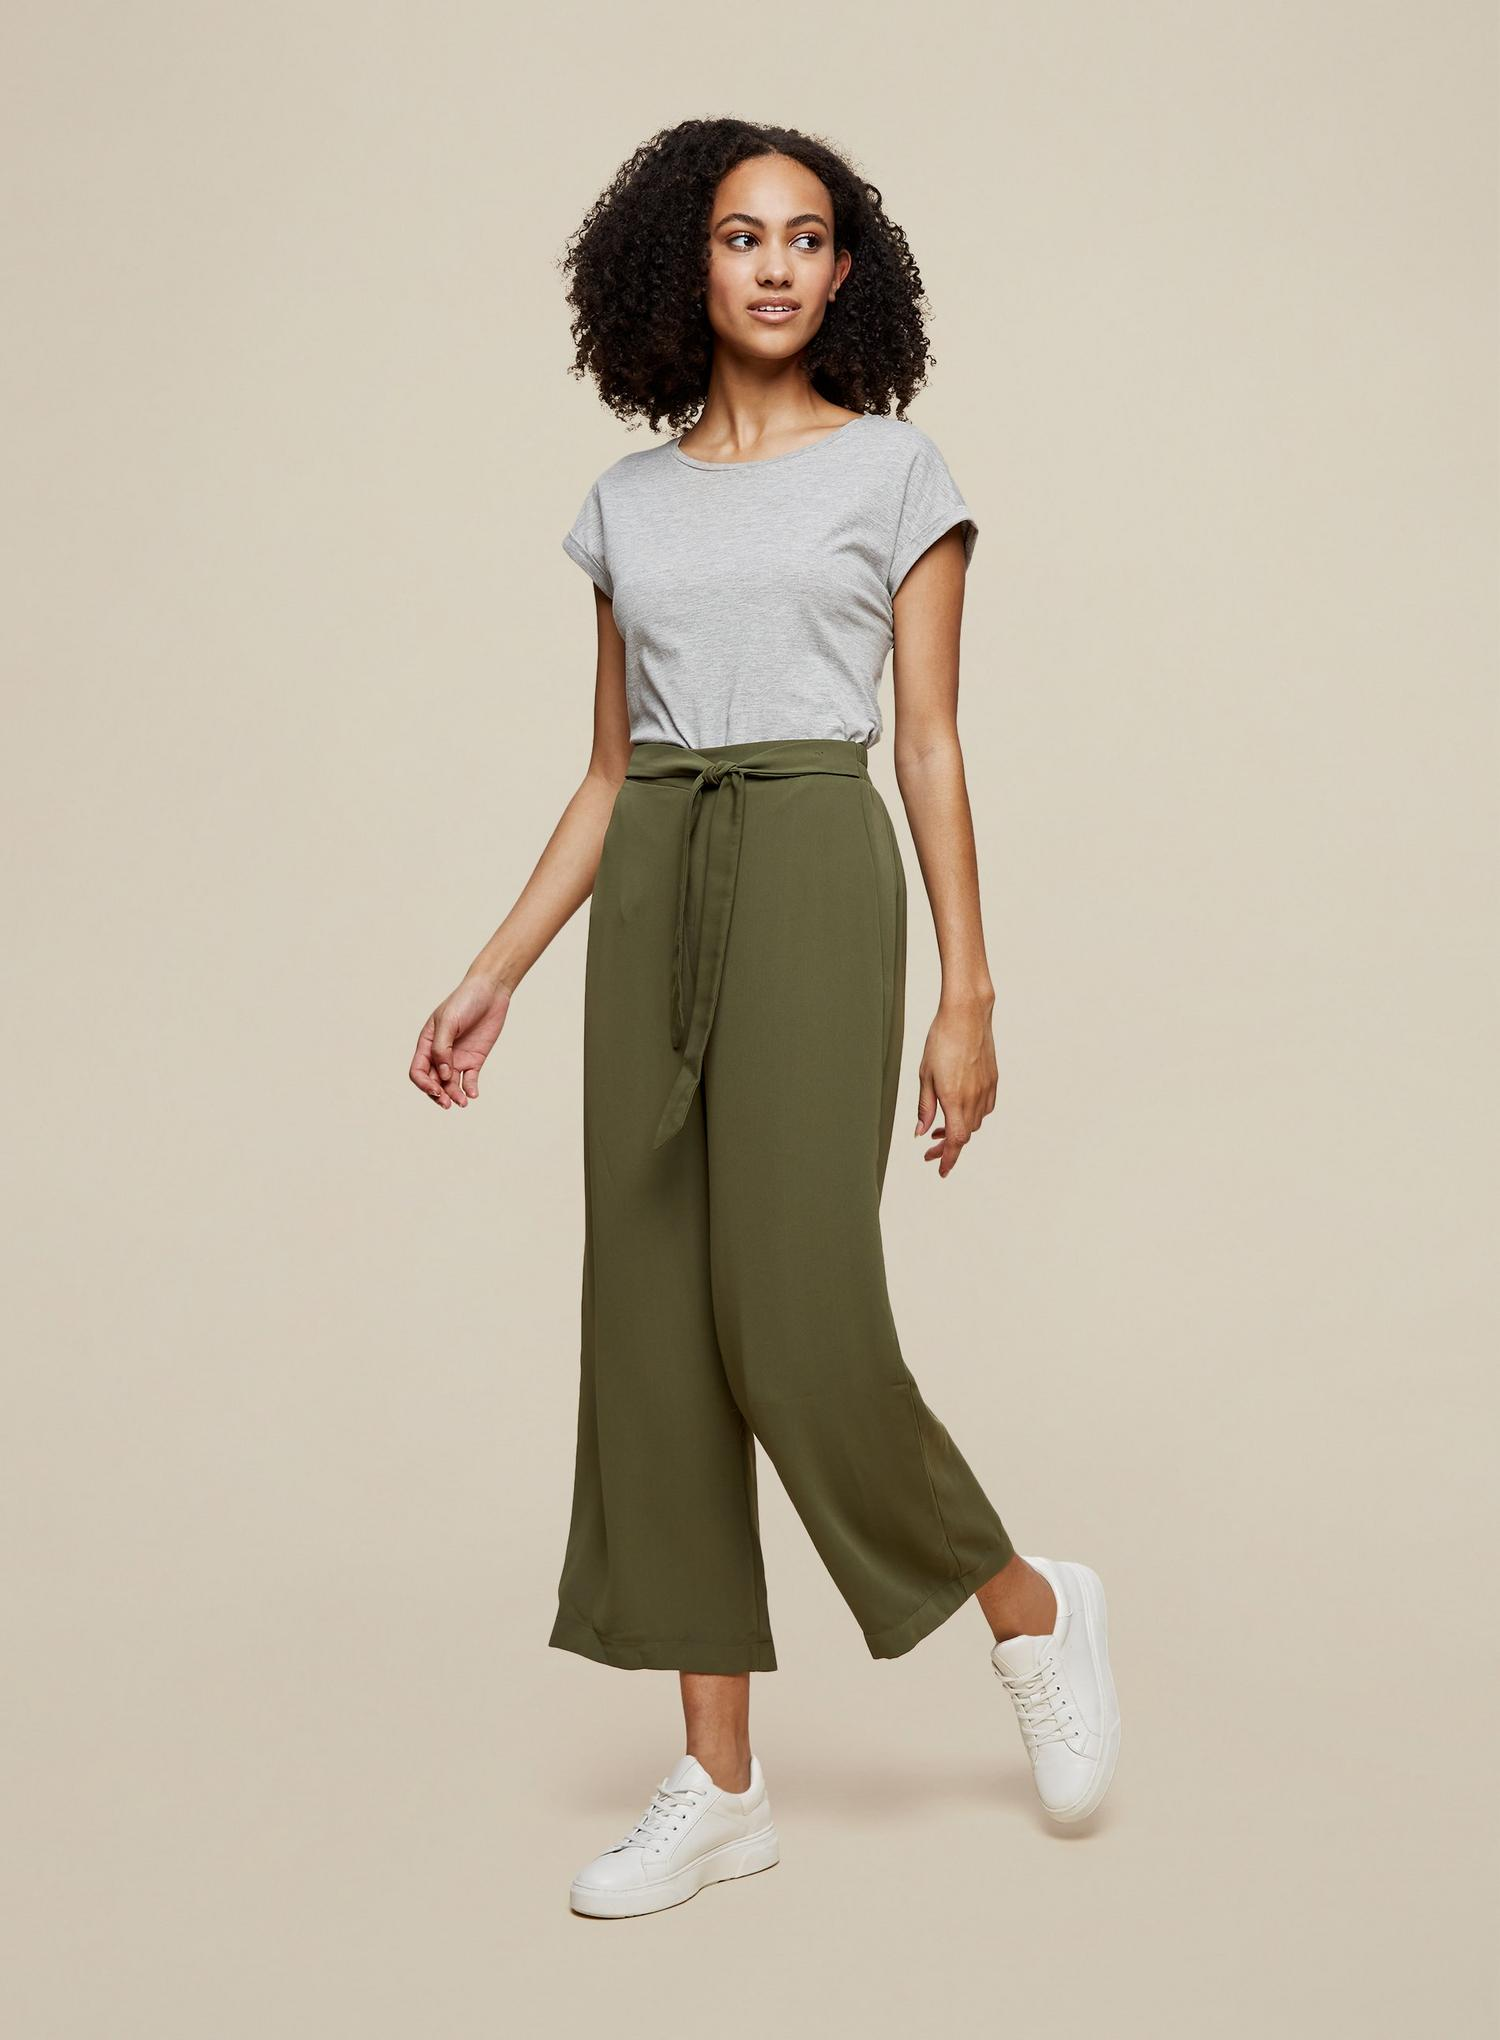 130 Tall Khaki Cropped Palazzo Trousers image number 1